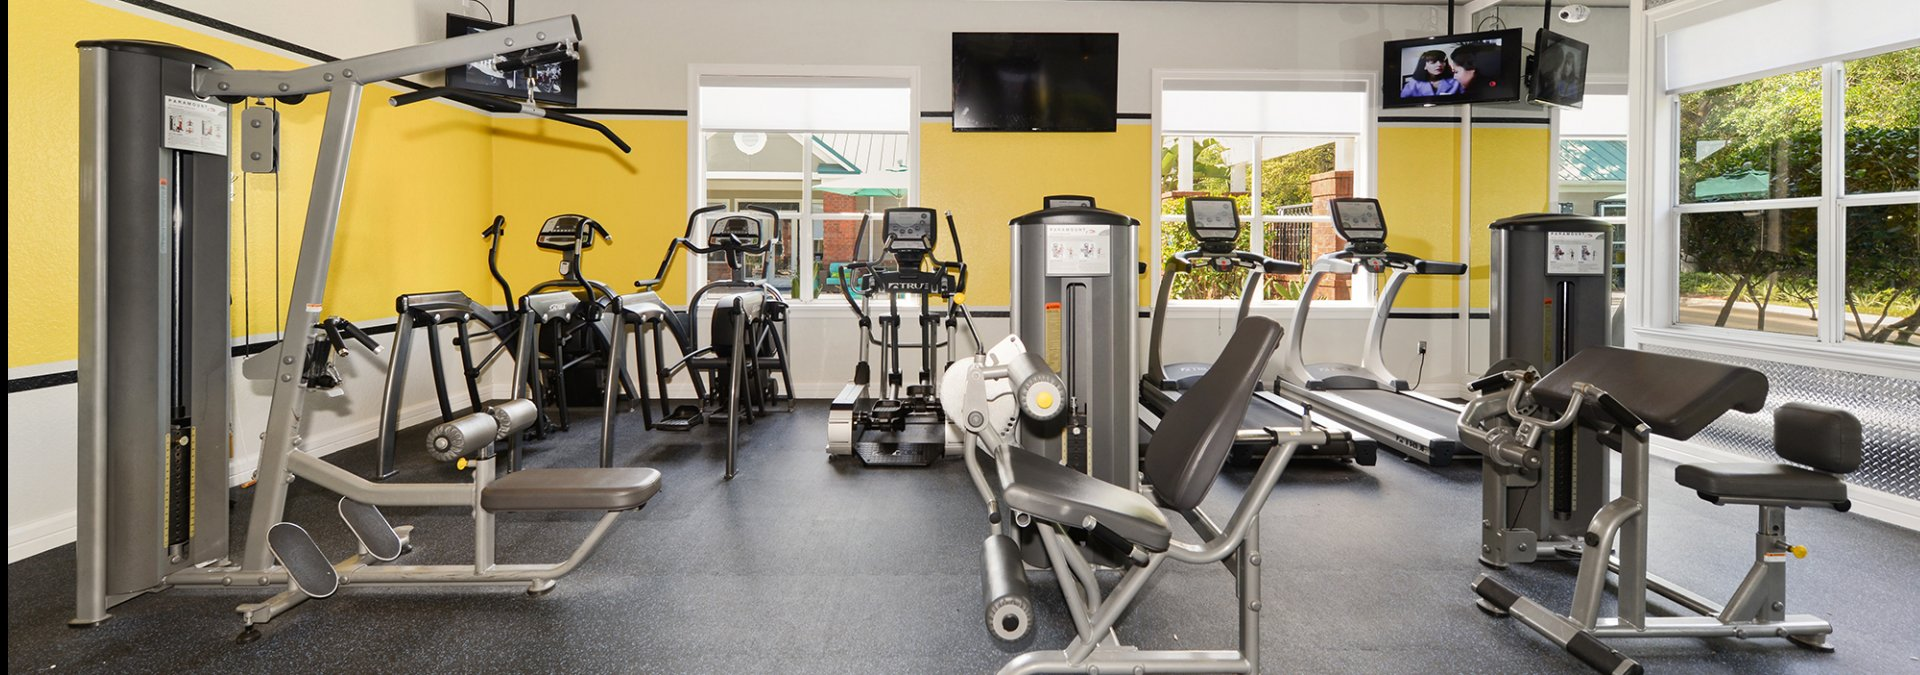 State-of-the-Art Fitness Center | Off Campus Housing USF | The Social at South Florida